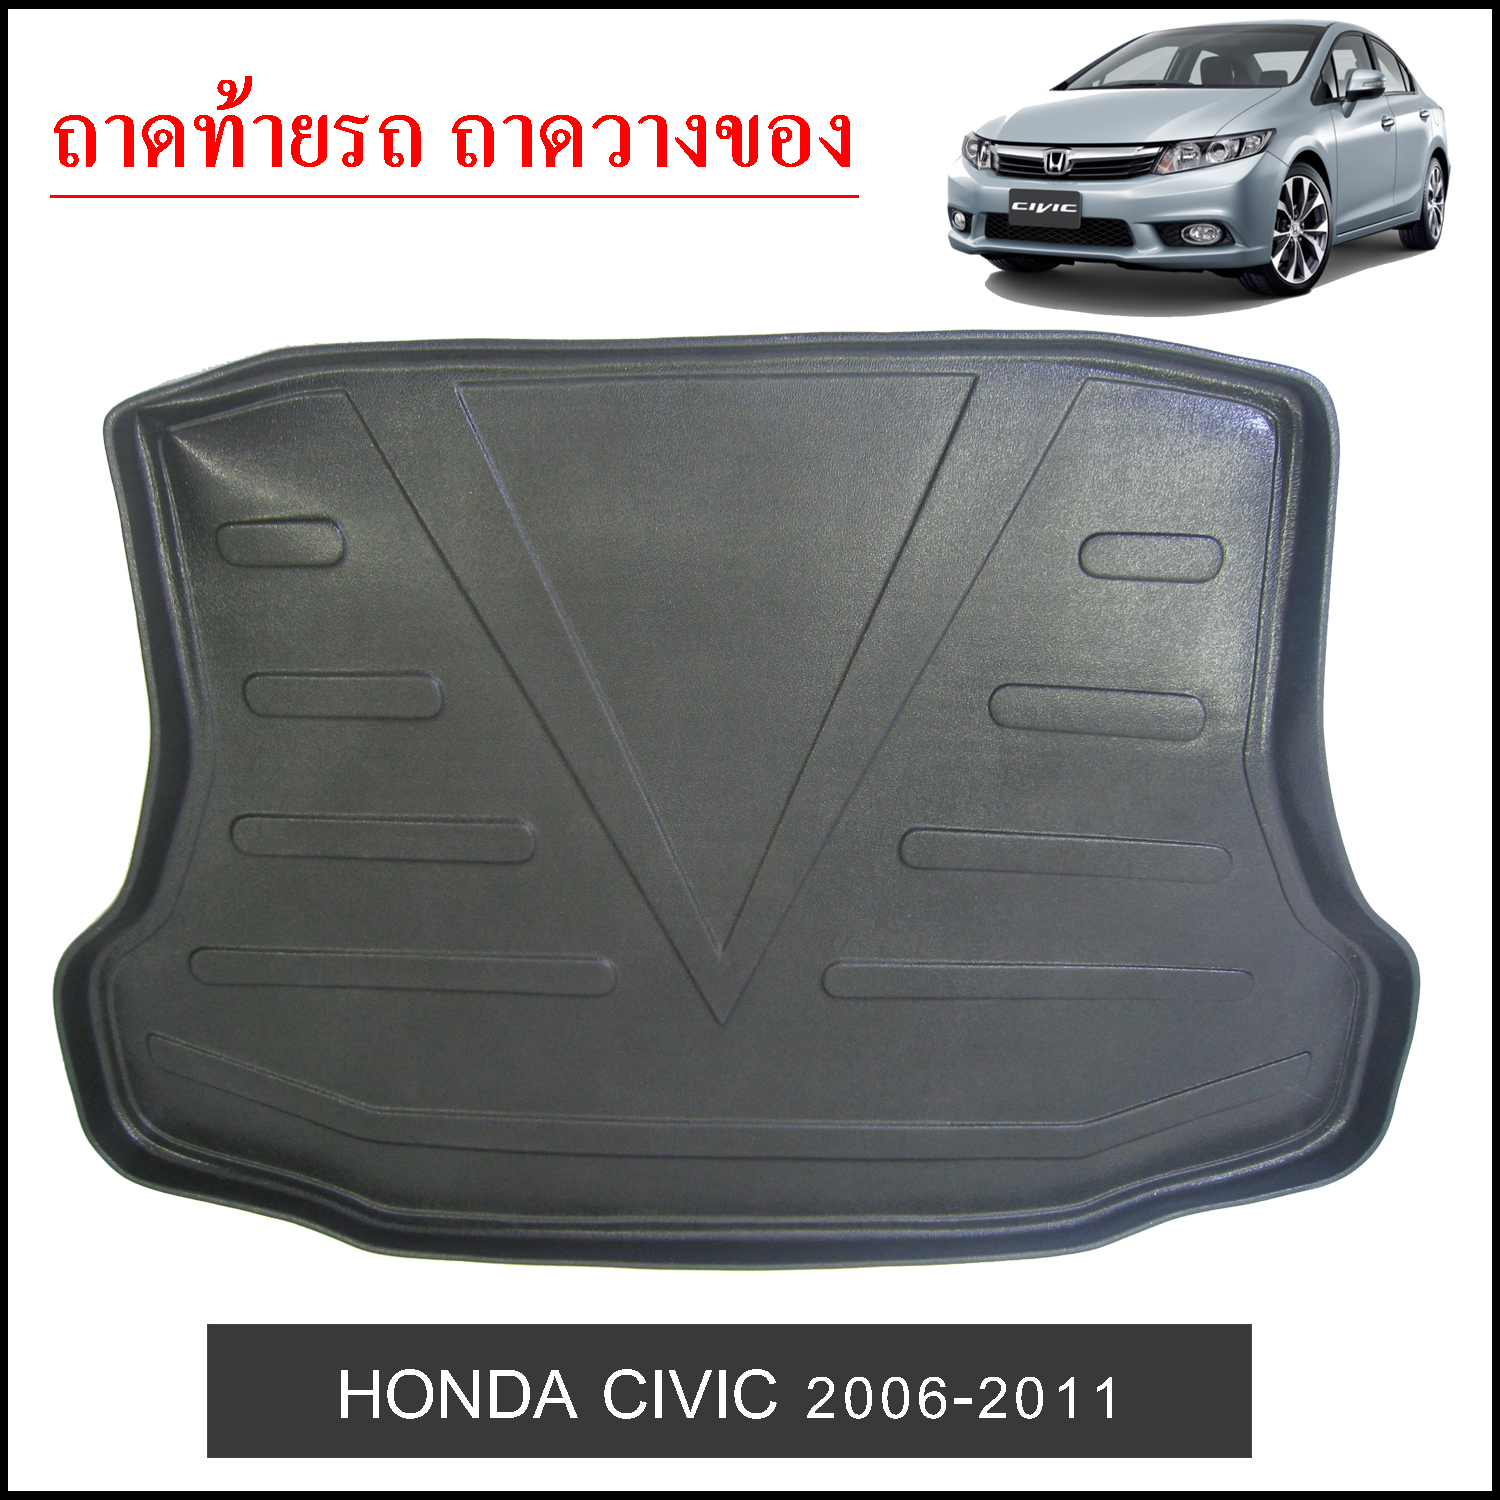 Honda Civic 2006-2011